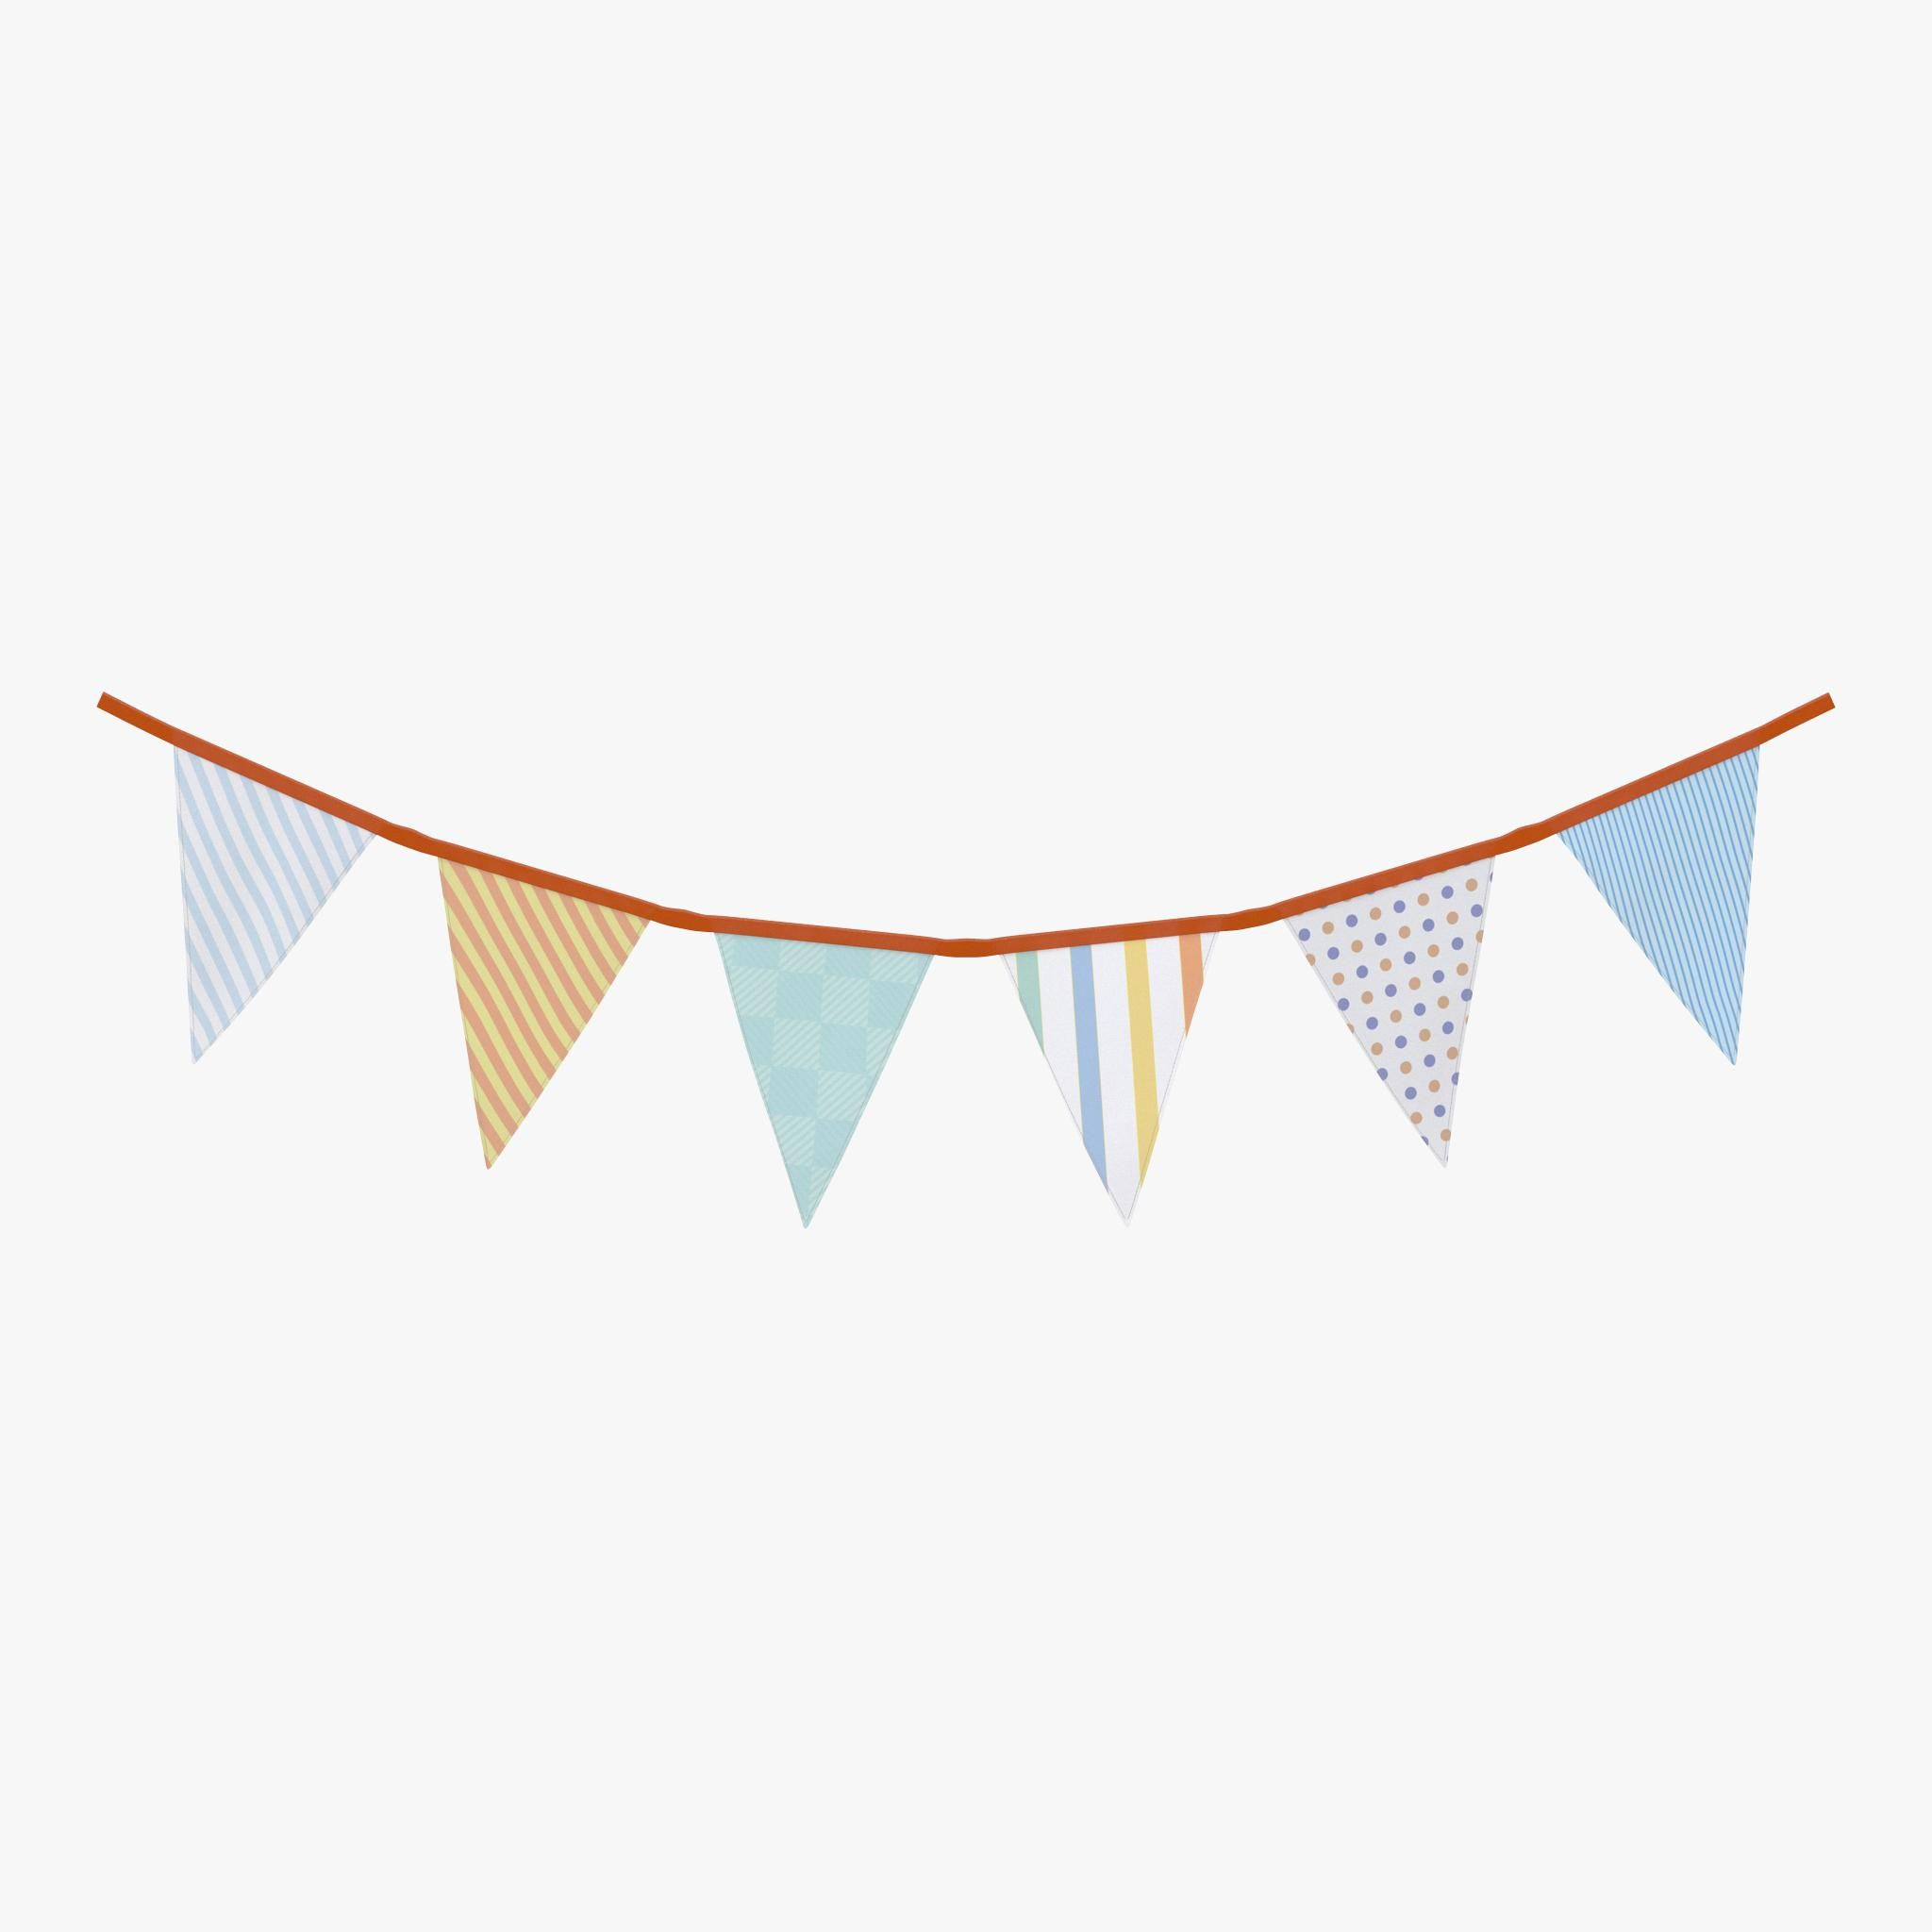 10 5 Feet Double Sided Black And White Cotton Fabric Triangle Pennant Flag Bunting Banner 12 Flags For Nursery Ki Fabric Bunting Tent Decorations Fabric Banner